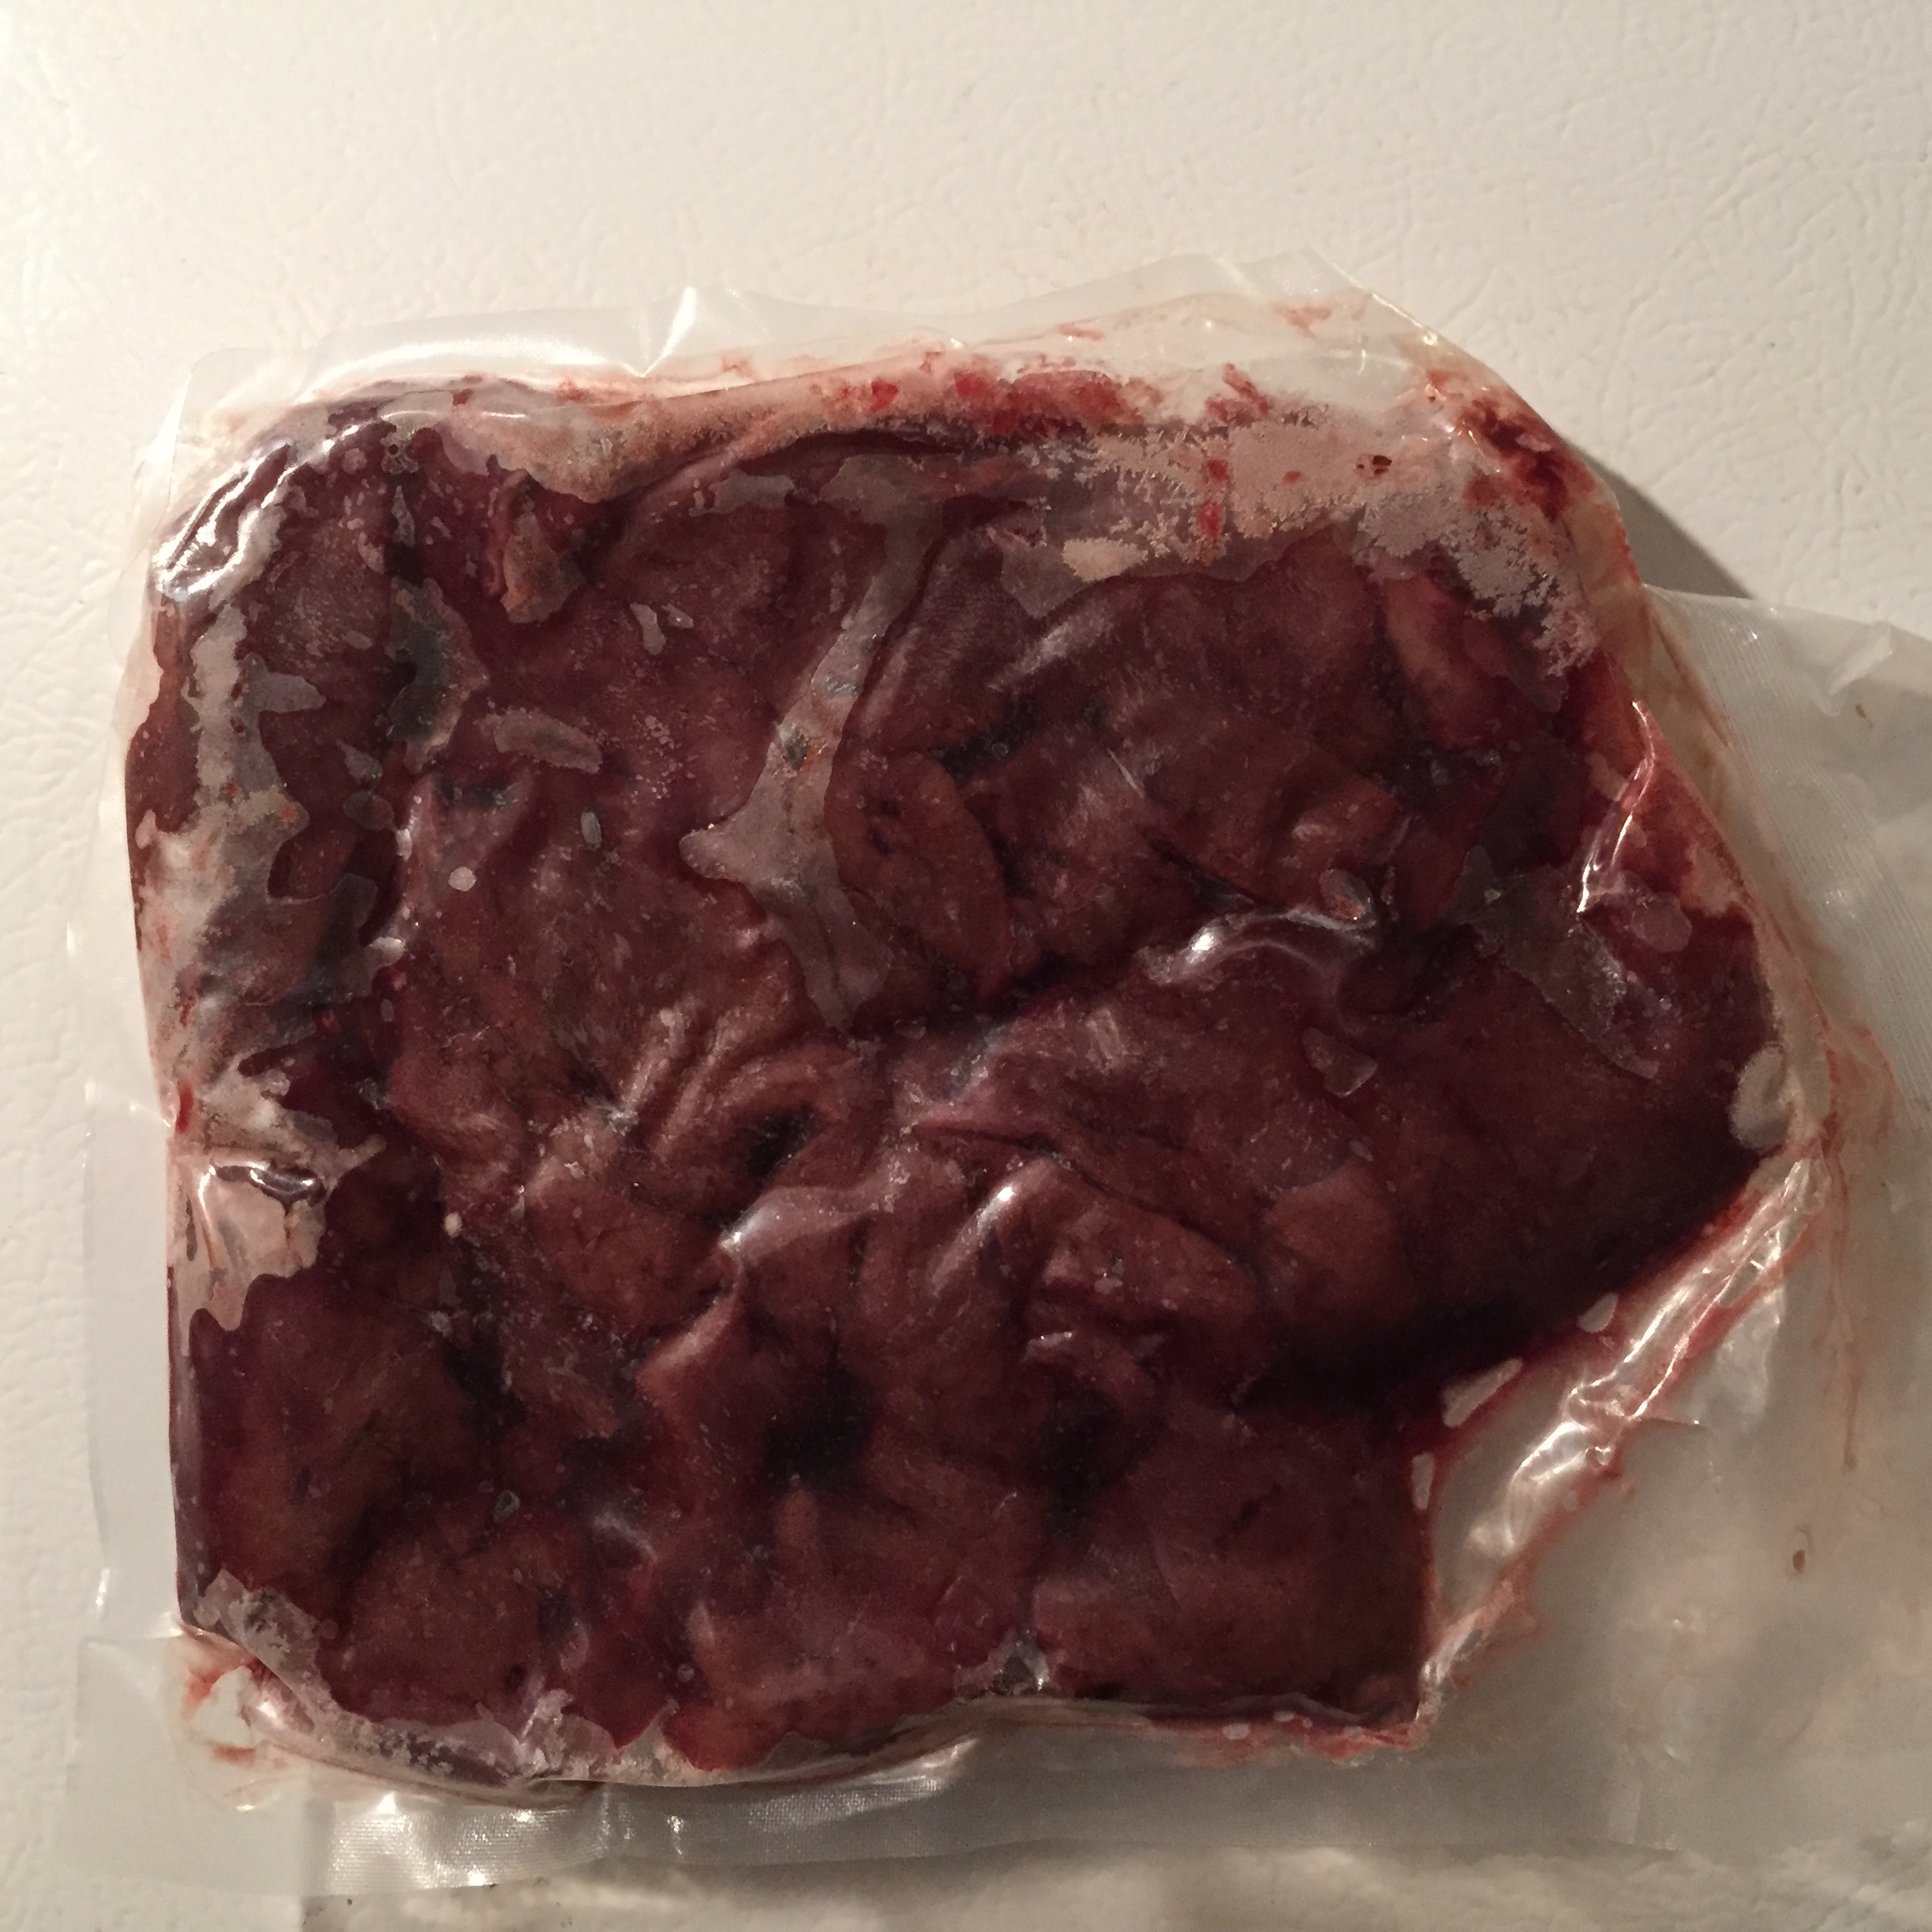 SOLD OUT- Lamb liver - $7.00/lb available in 1 lb packages